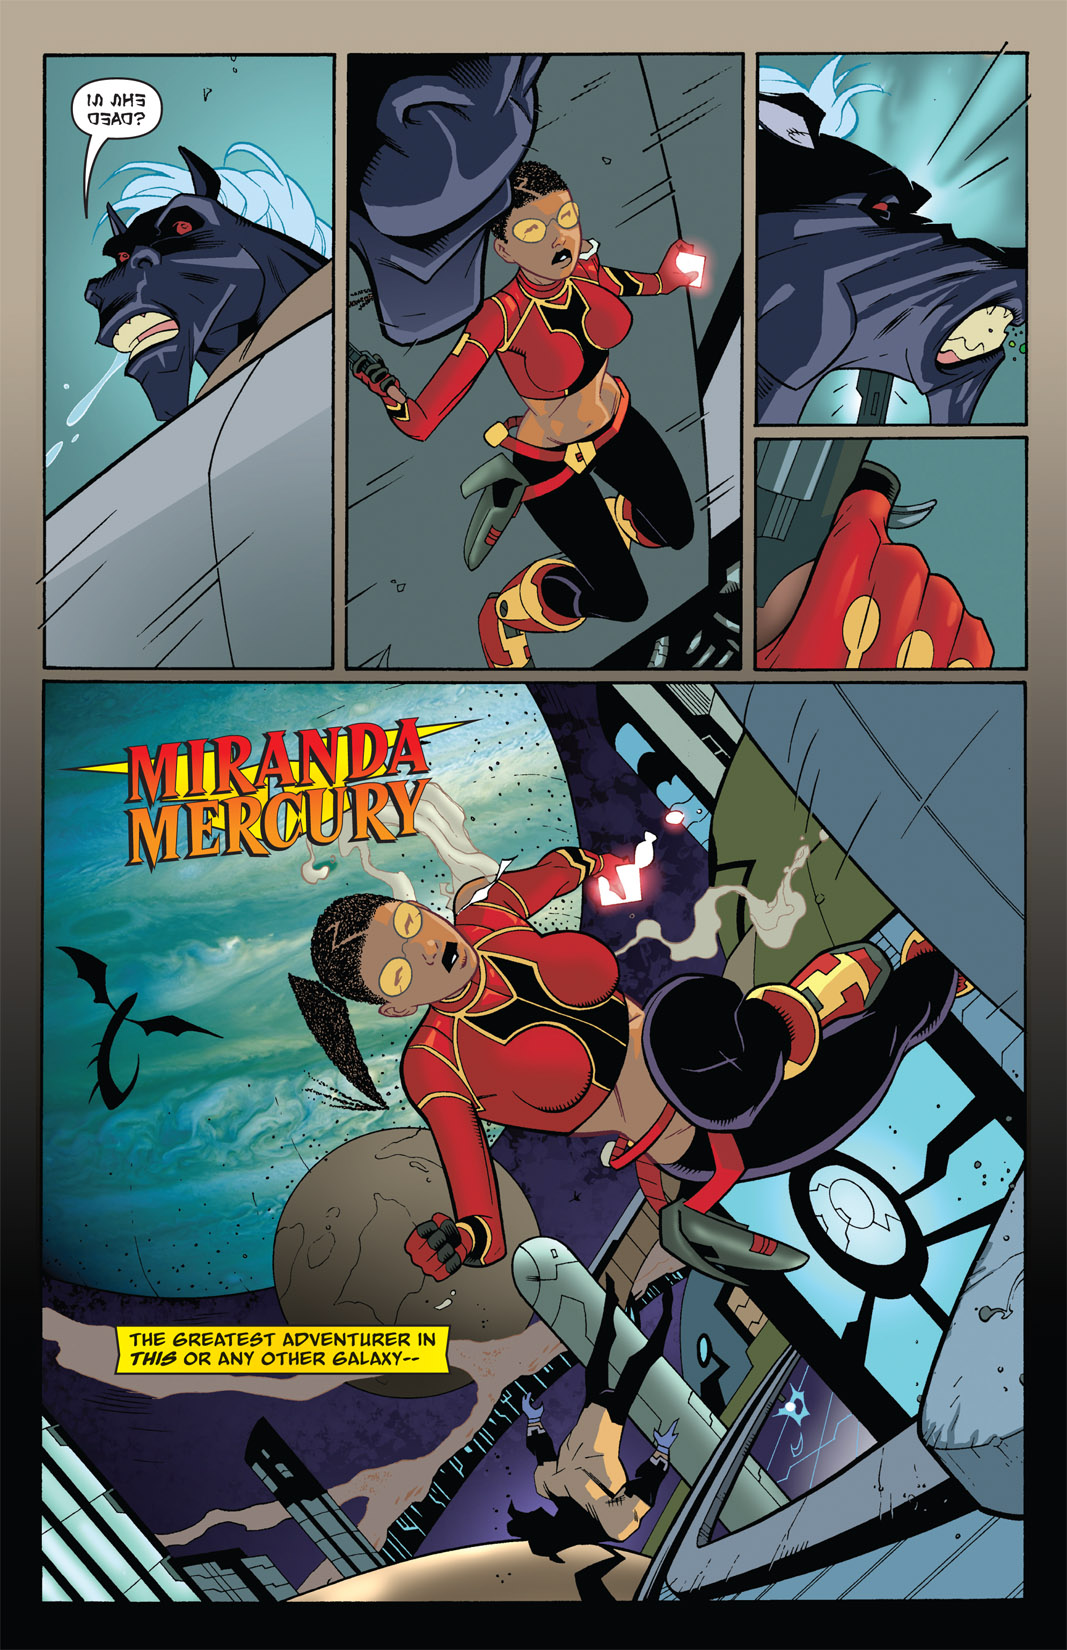 Read online The Many Adventures of Miranda Mercury: Time Runs Out comic -  Issue # TPB - 21